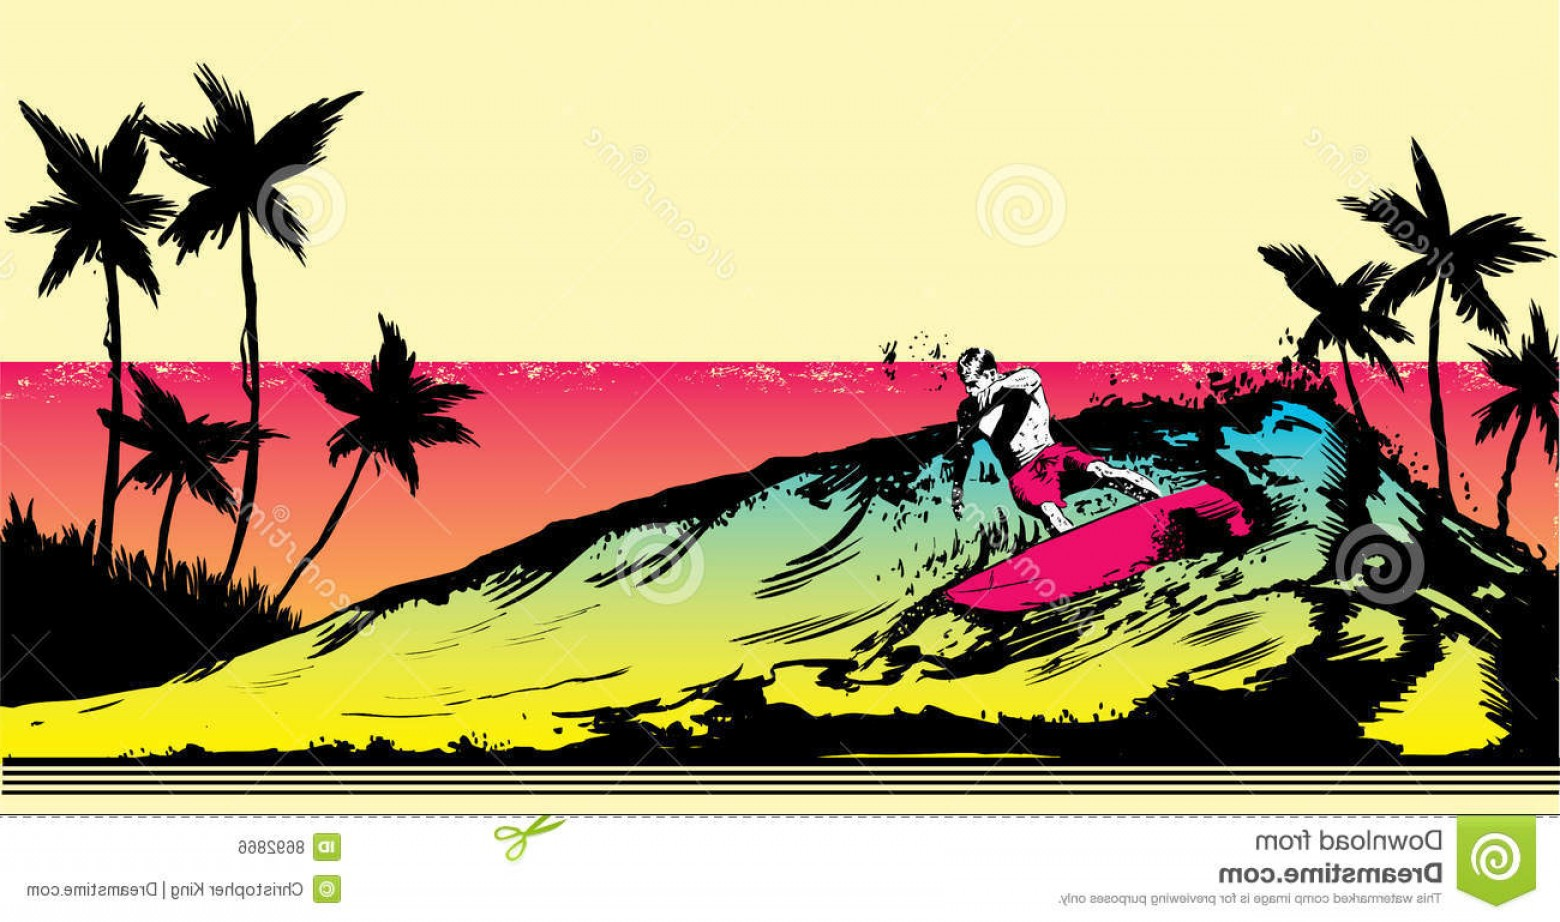 Beach Surf Vectors: Royalty Free Stock Image Retro Style Beach Scene Surfer Illustration Image